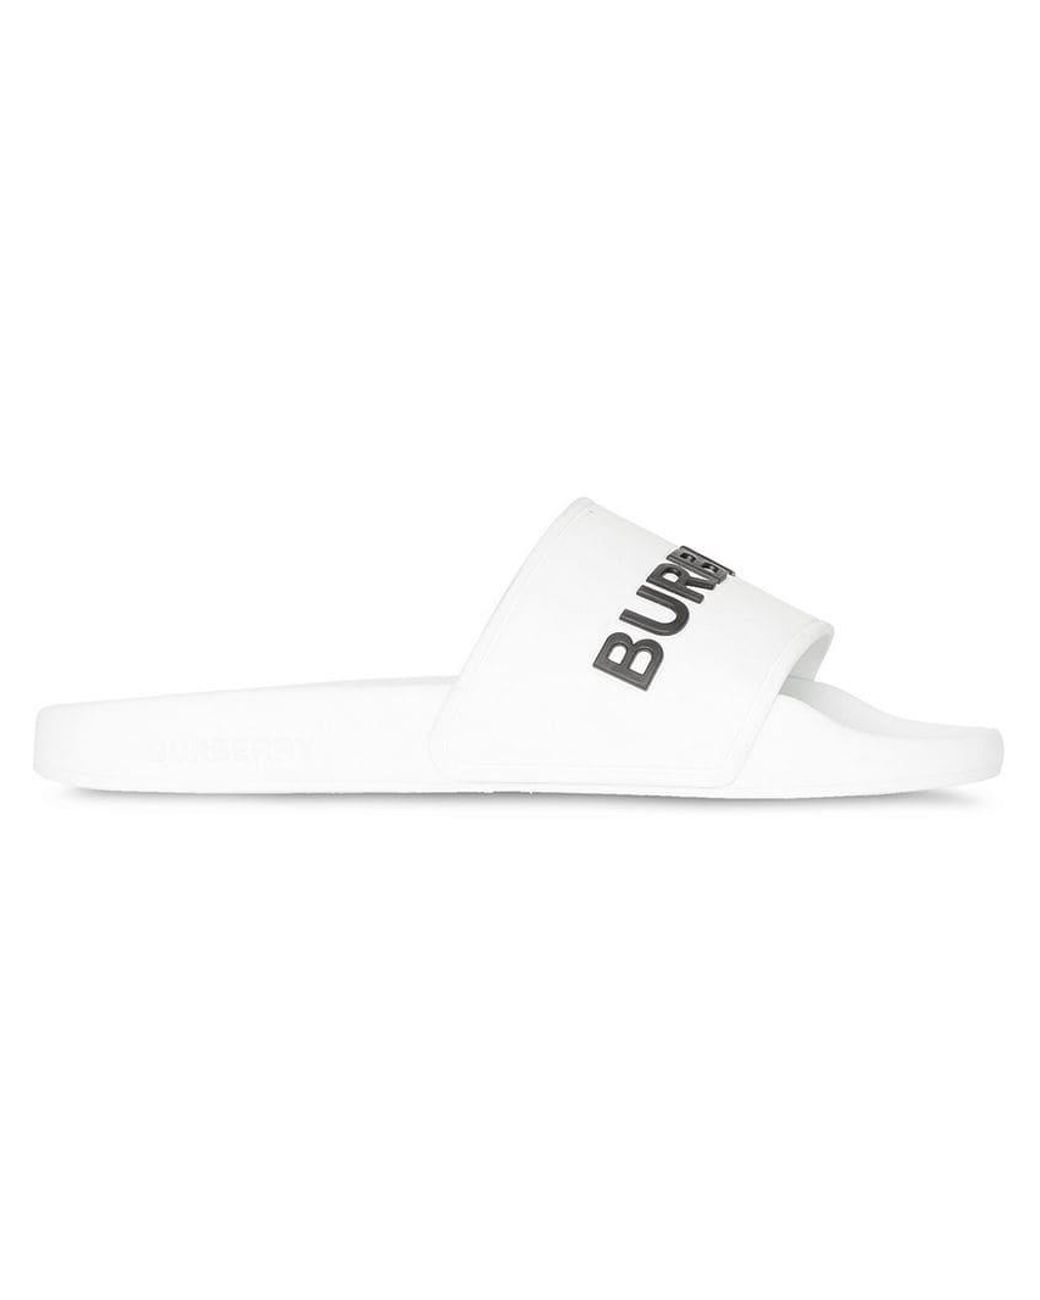 11d8d390fea7 Burberry Kingdom Print Slides in White - Lyst